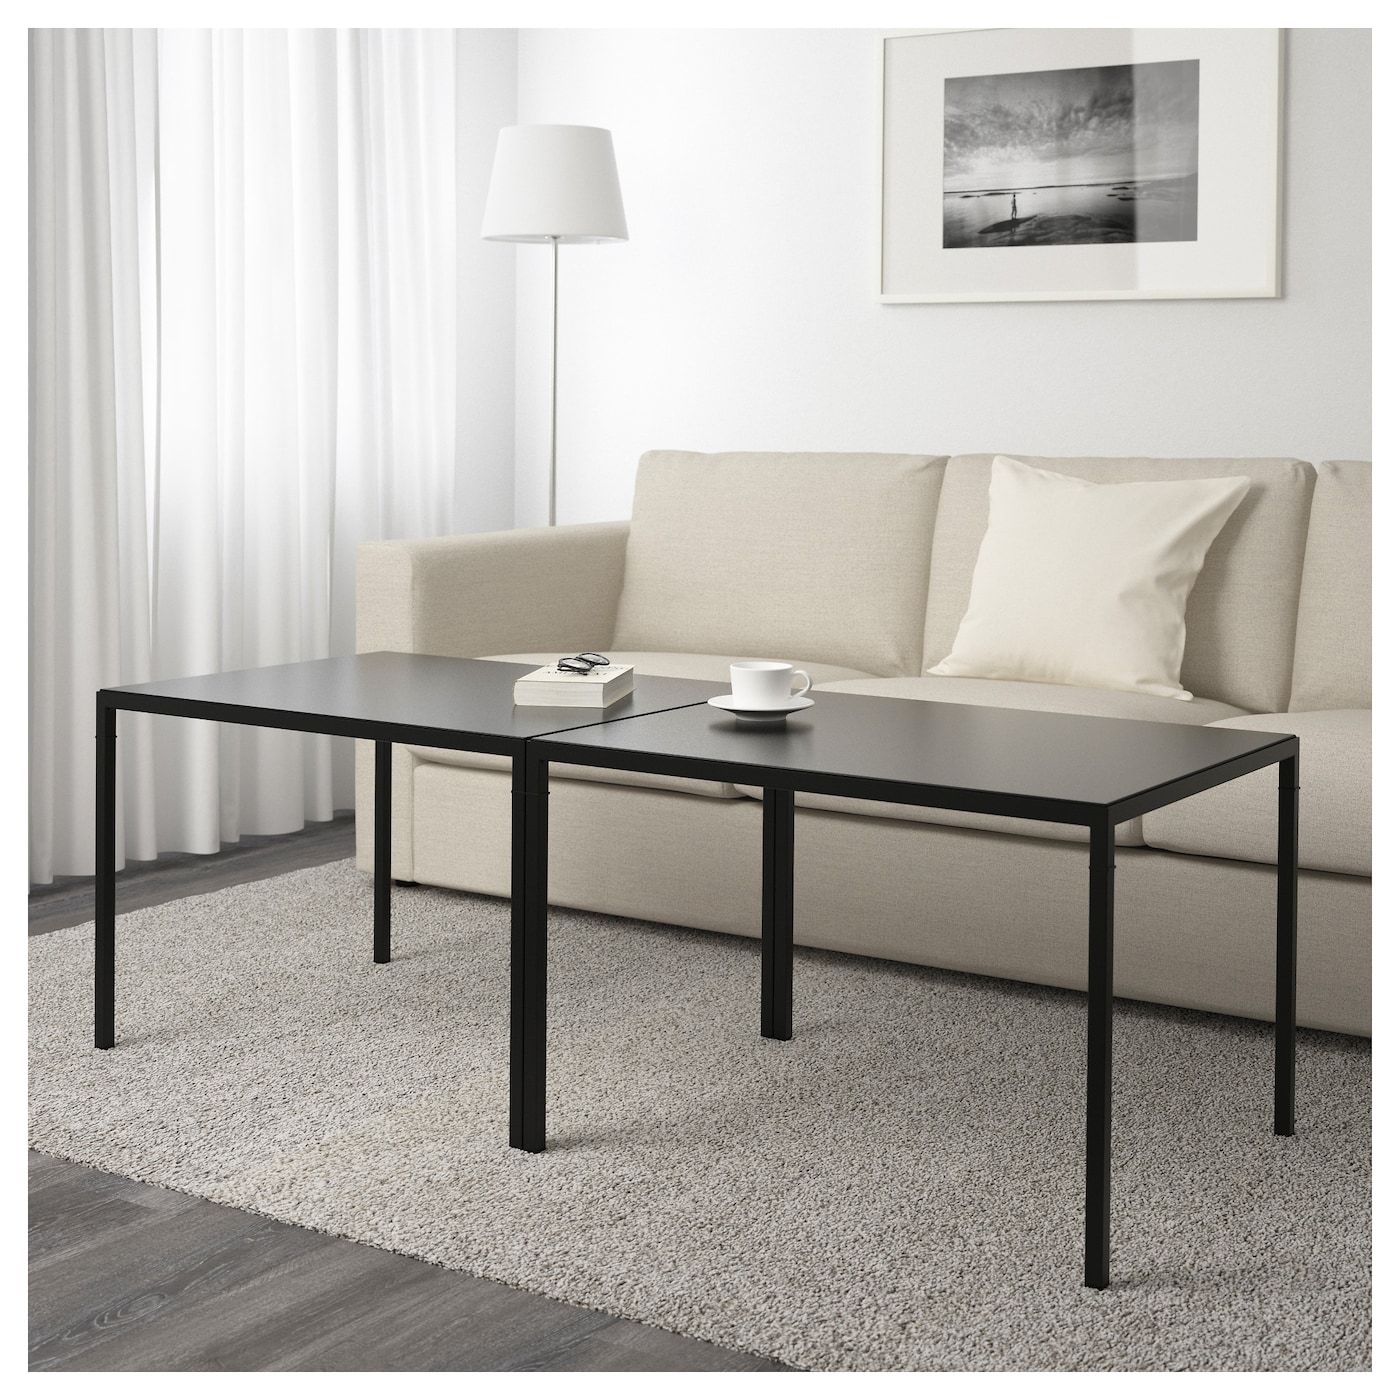 Products Ikea Side Table Coffee Table At Home Furniture Store [ 1400 x 1400 Pixel ]